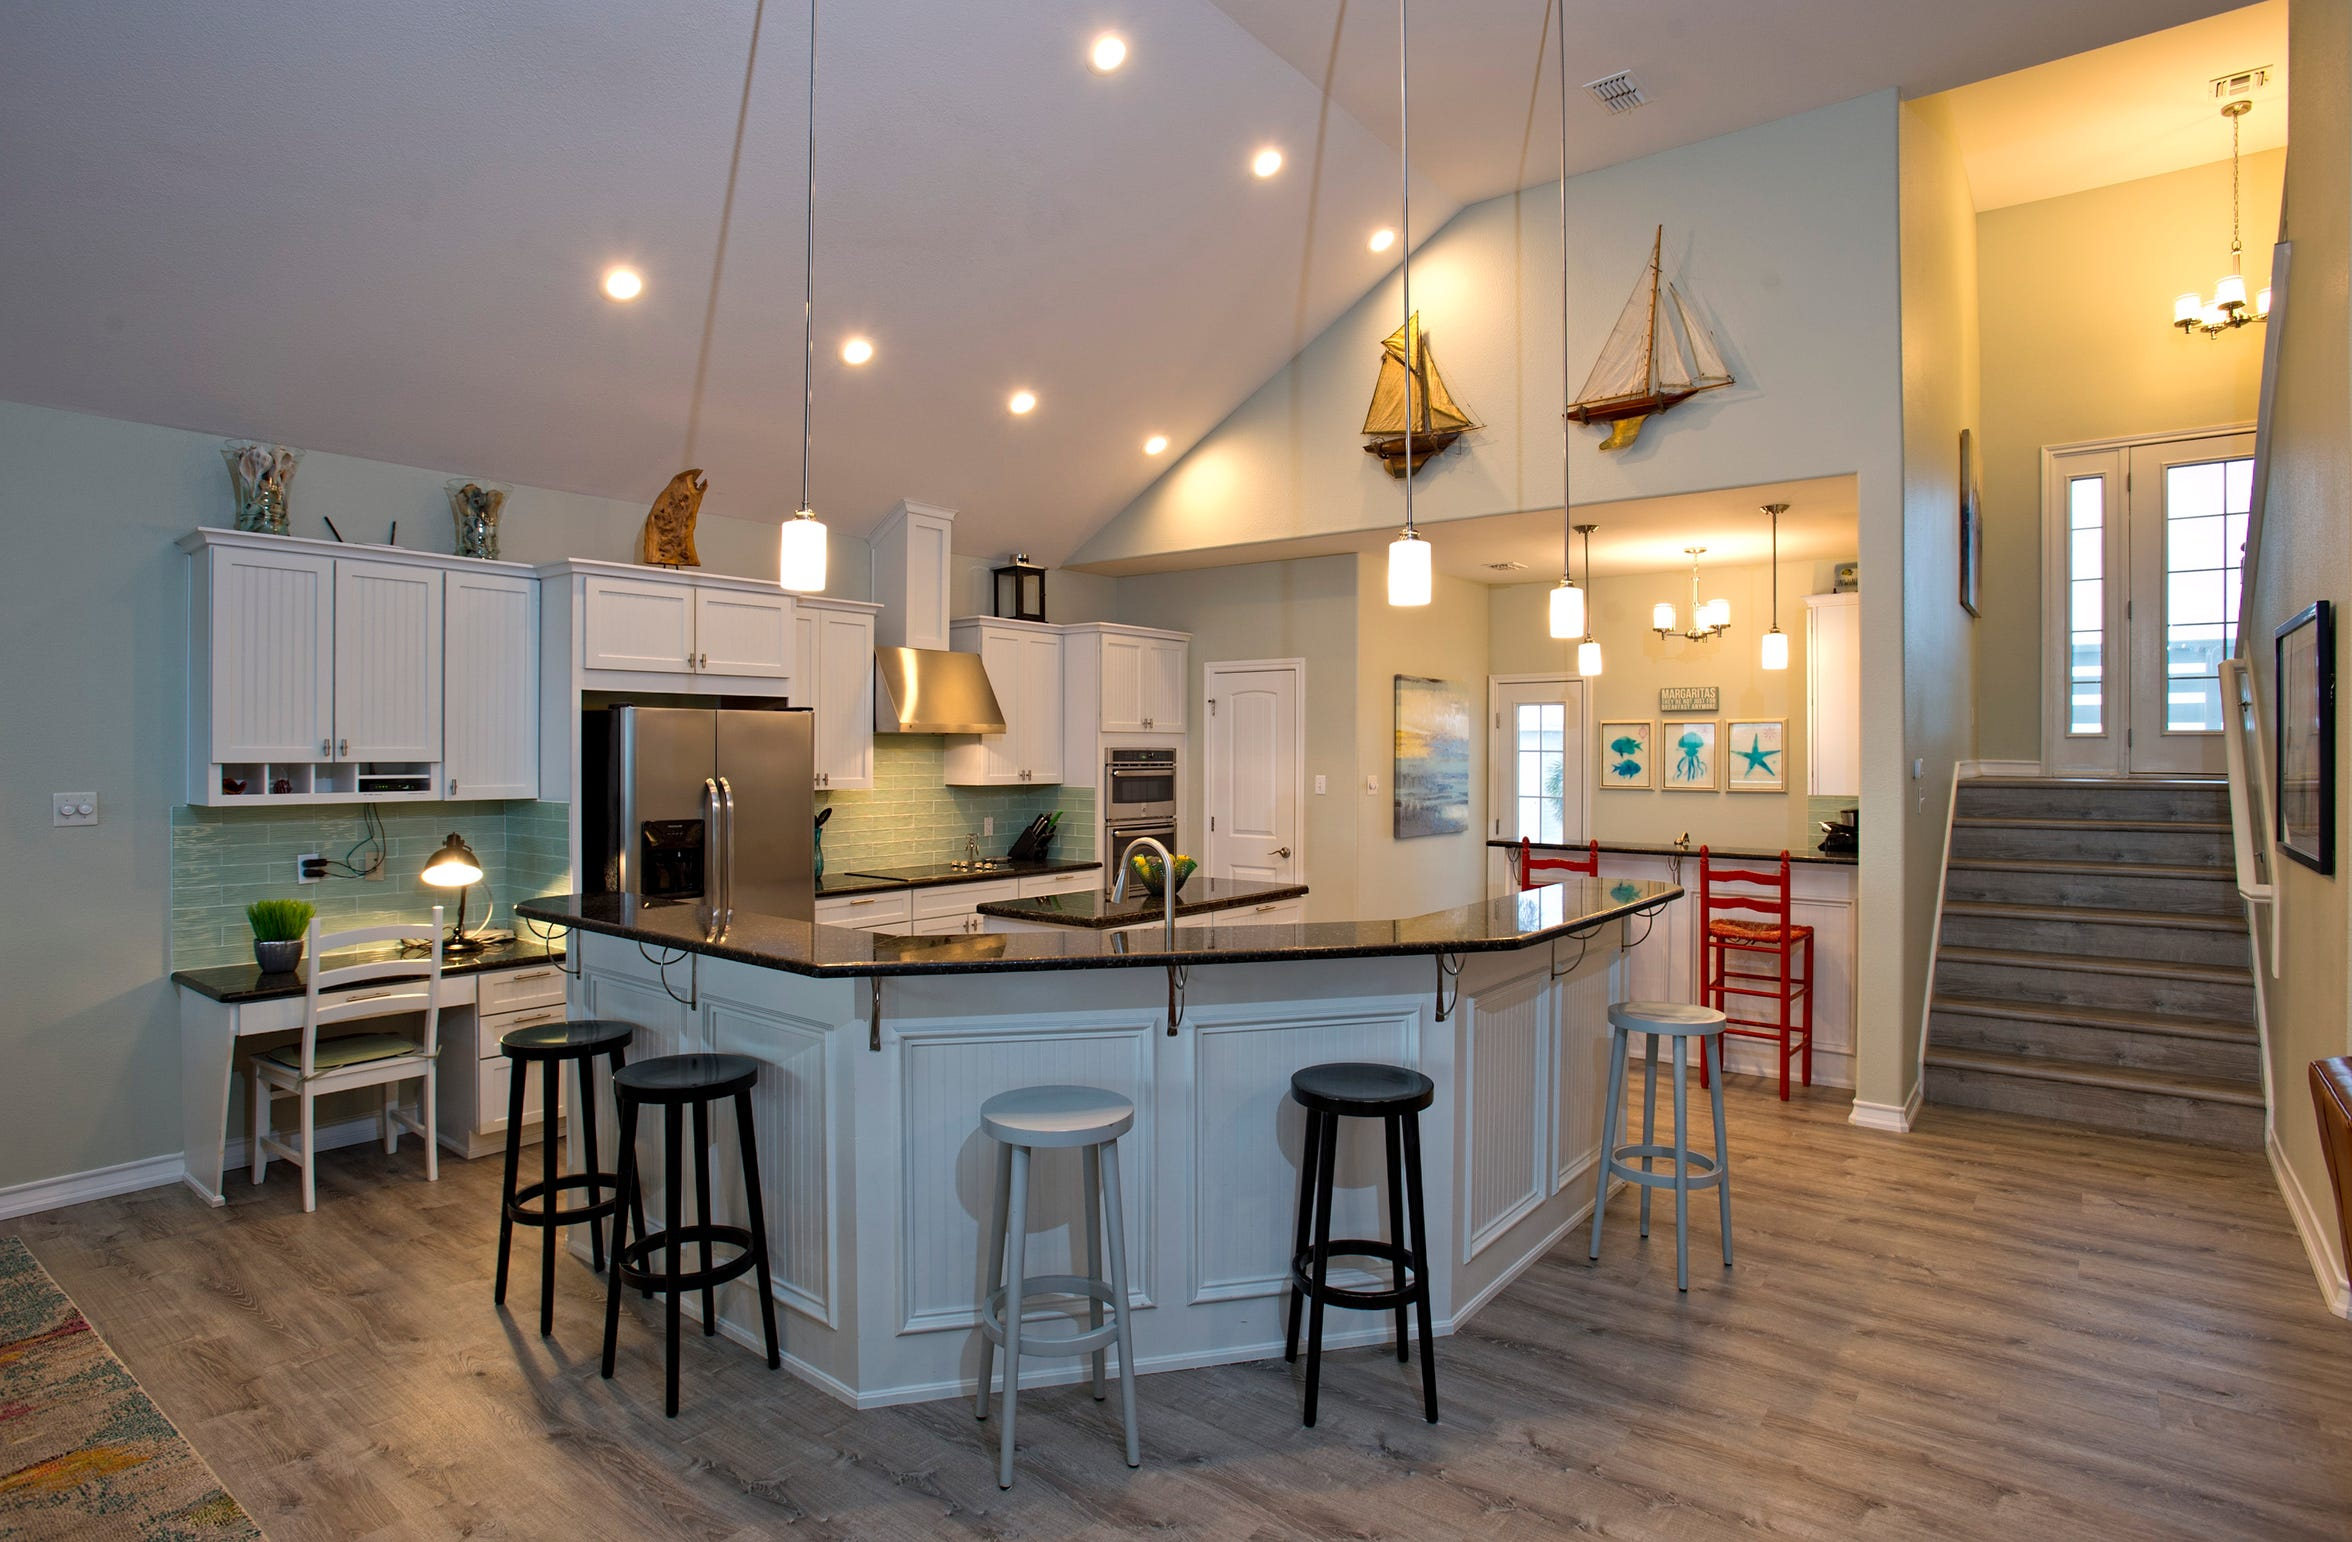 The Large open kitchen features a cool wrap around breakfast bar with plenty of seating to visit and dine plus  a  wet bar and beautiful island  views from every window.